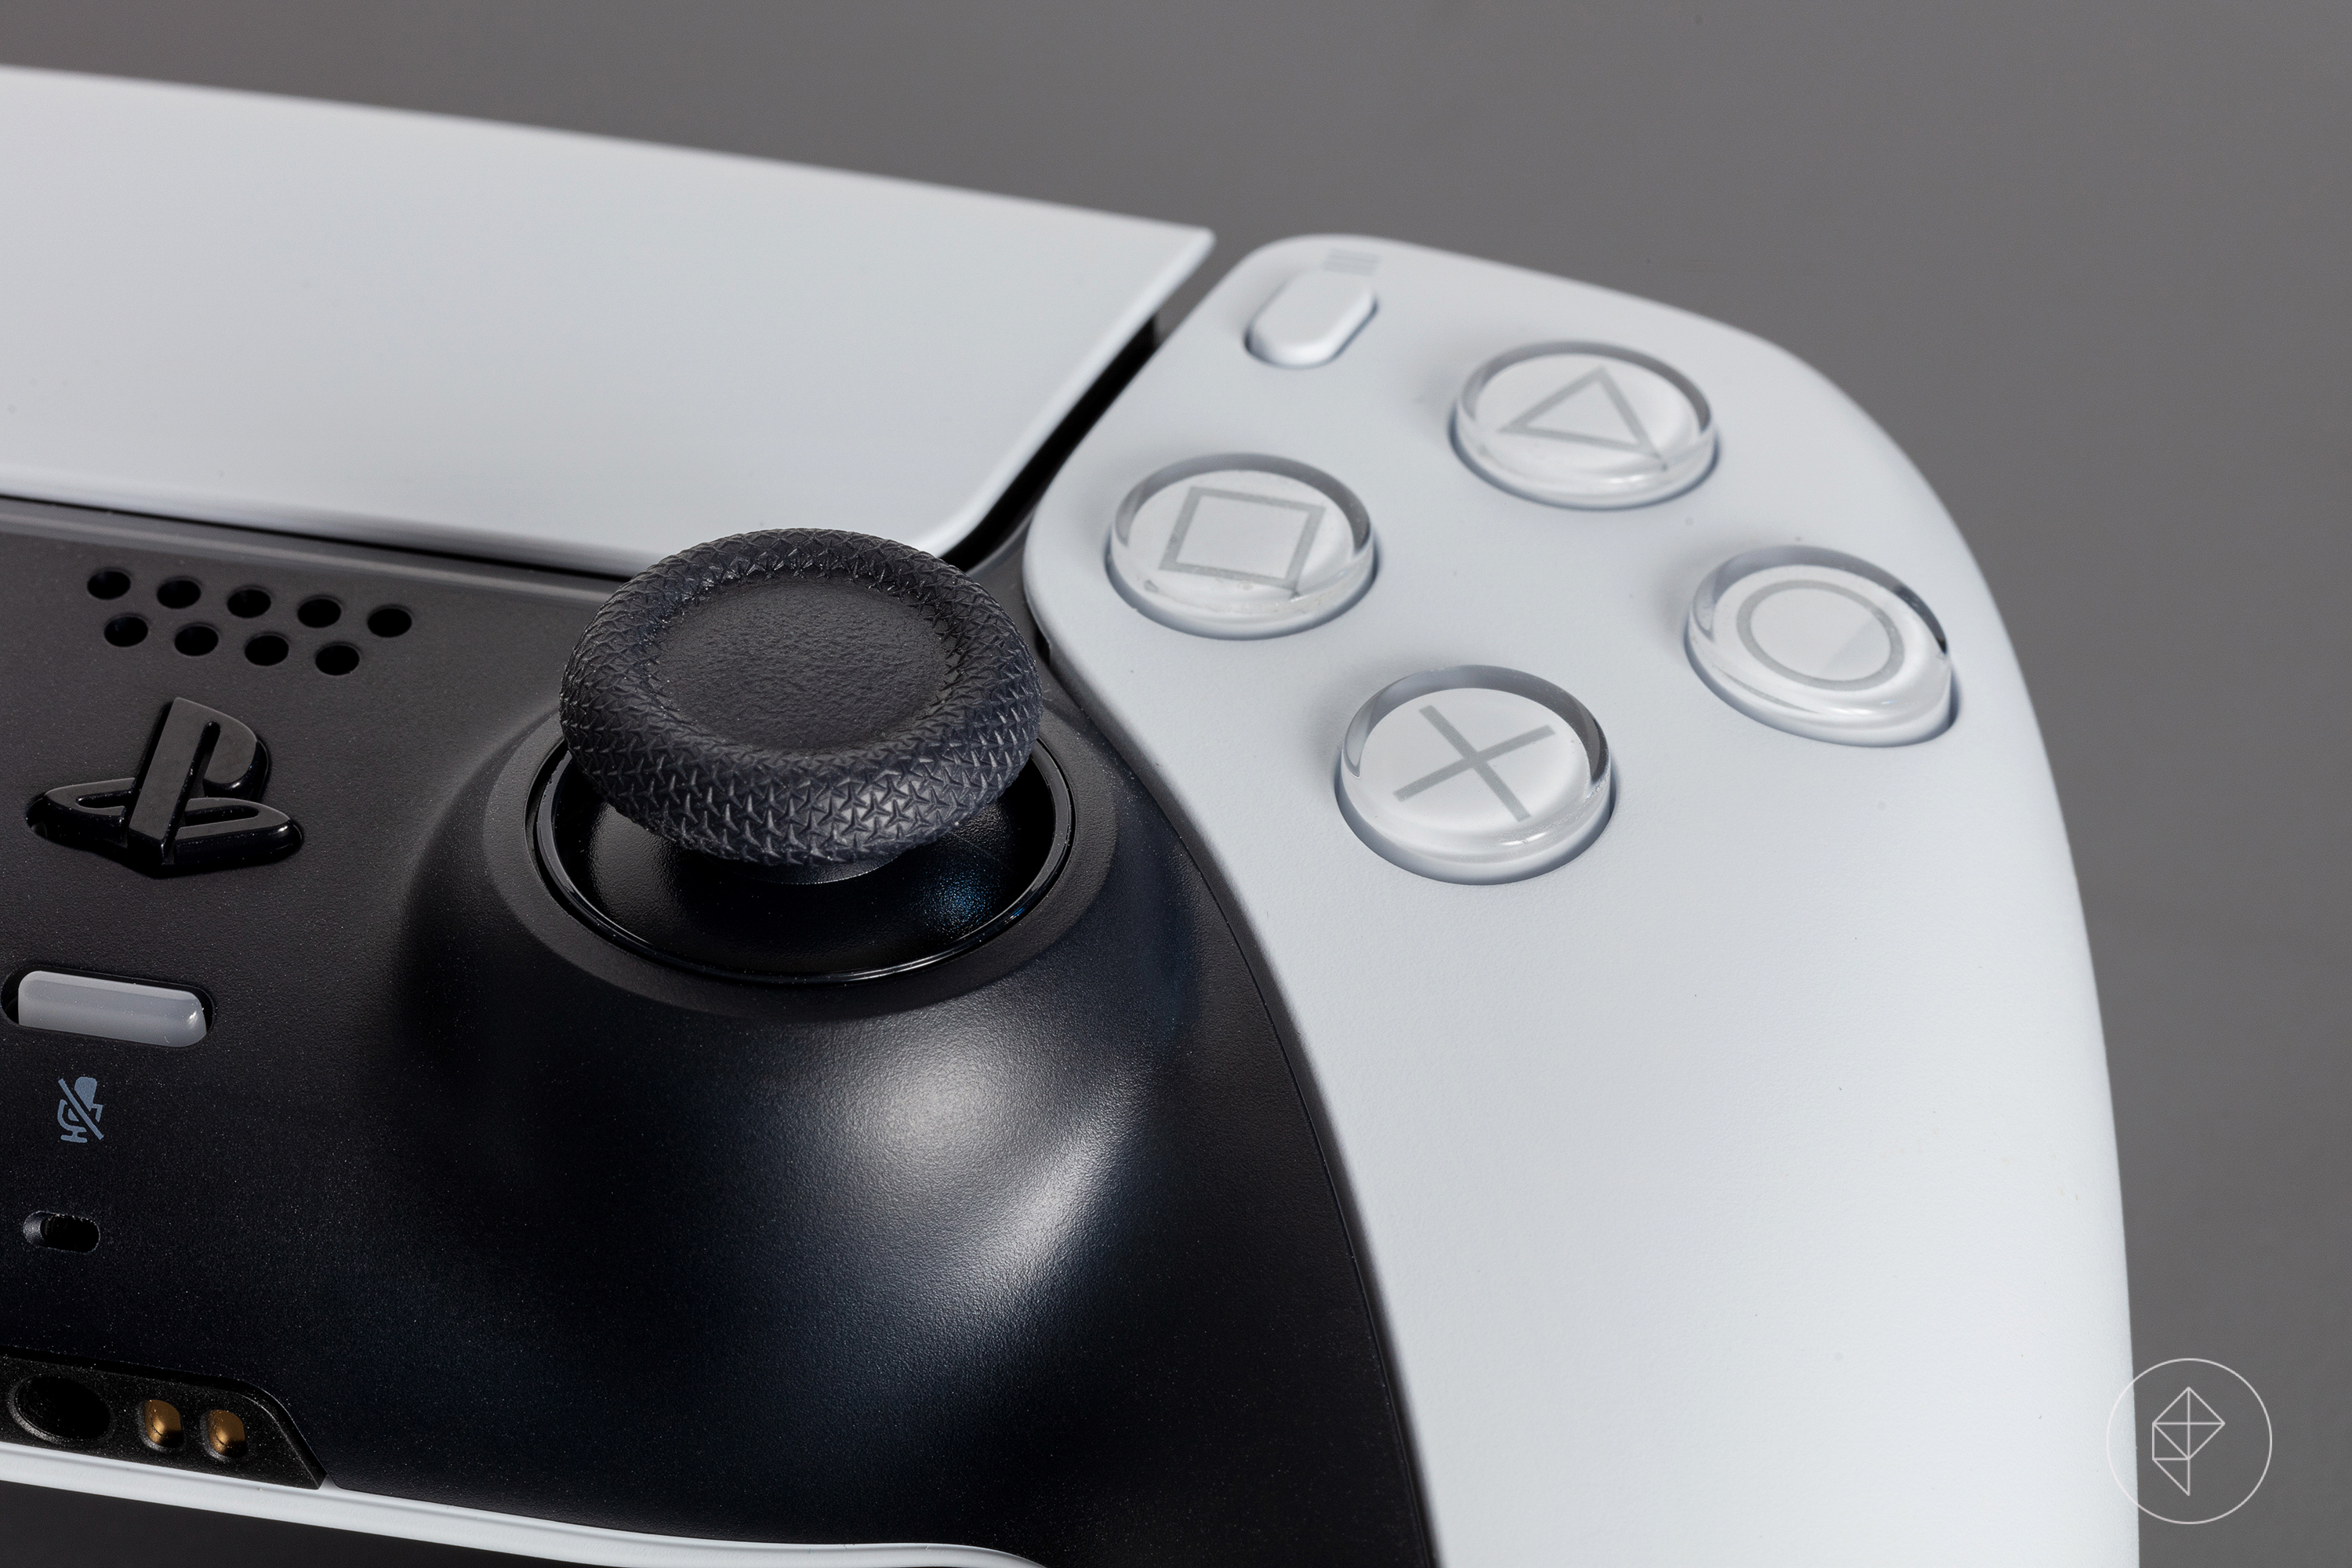 A close up photo of the face buttons on the Dualsense controller